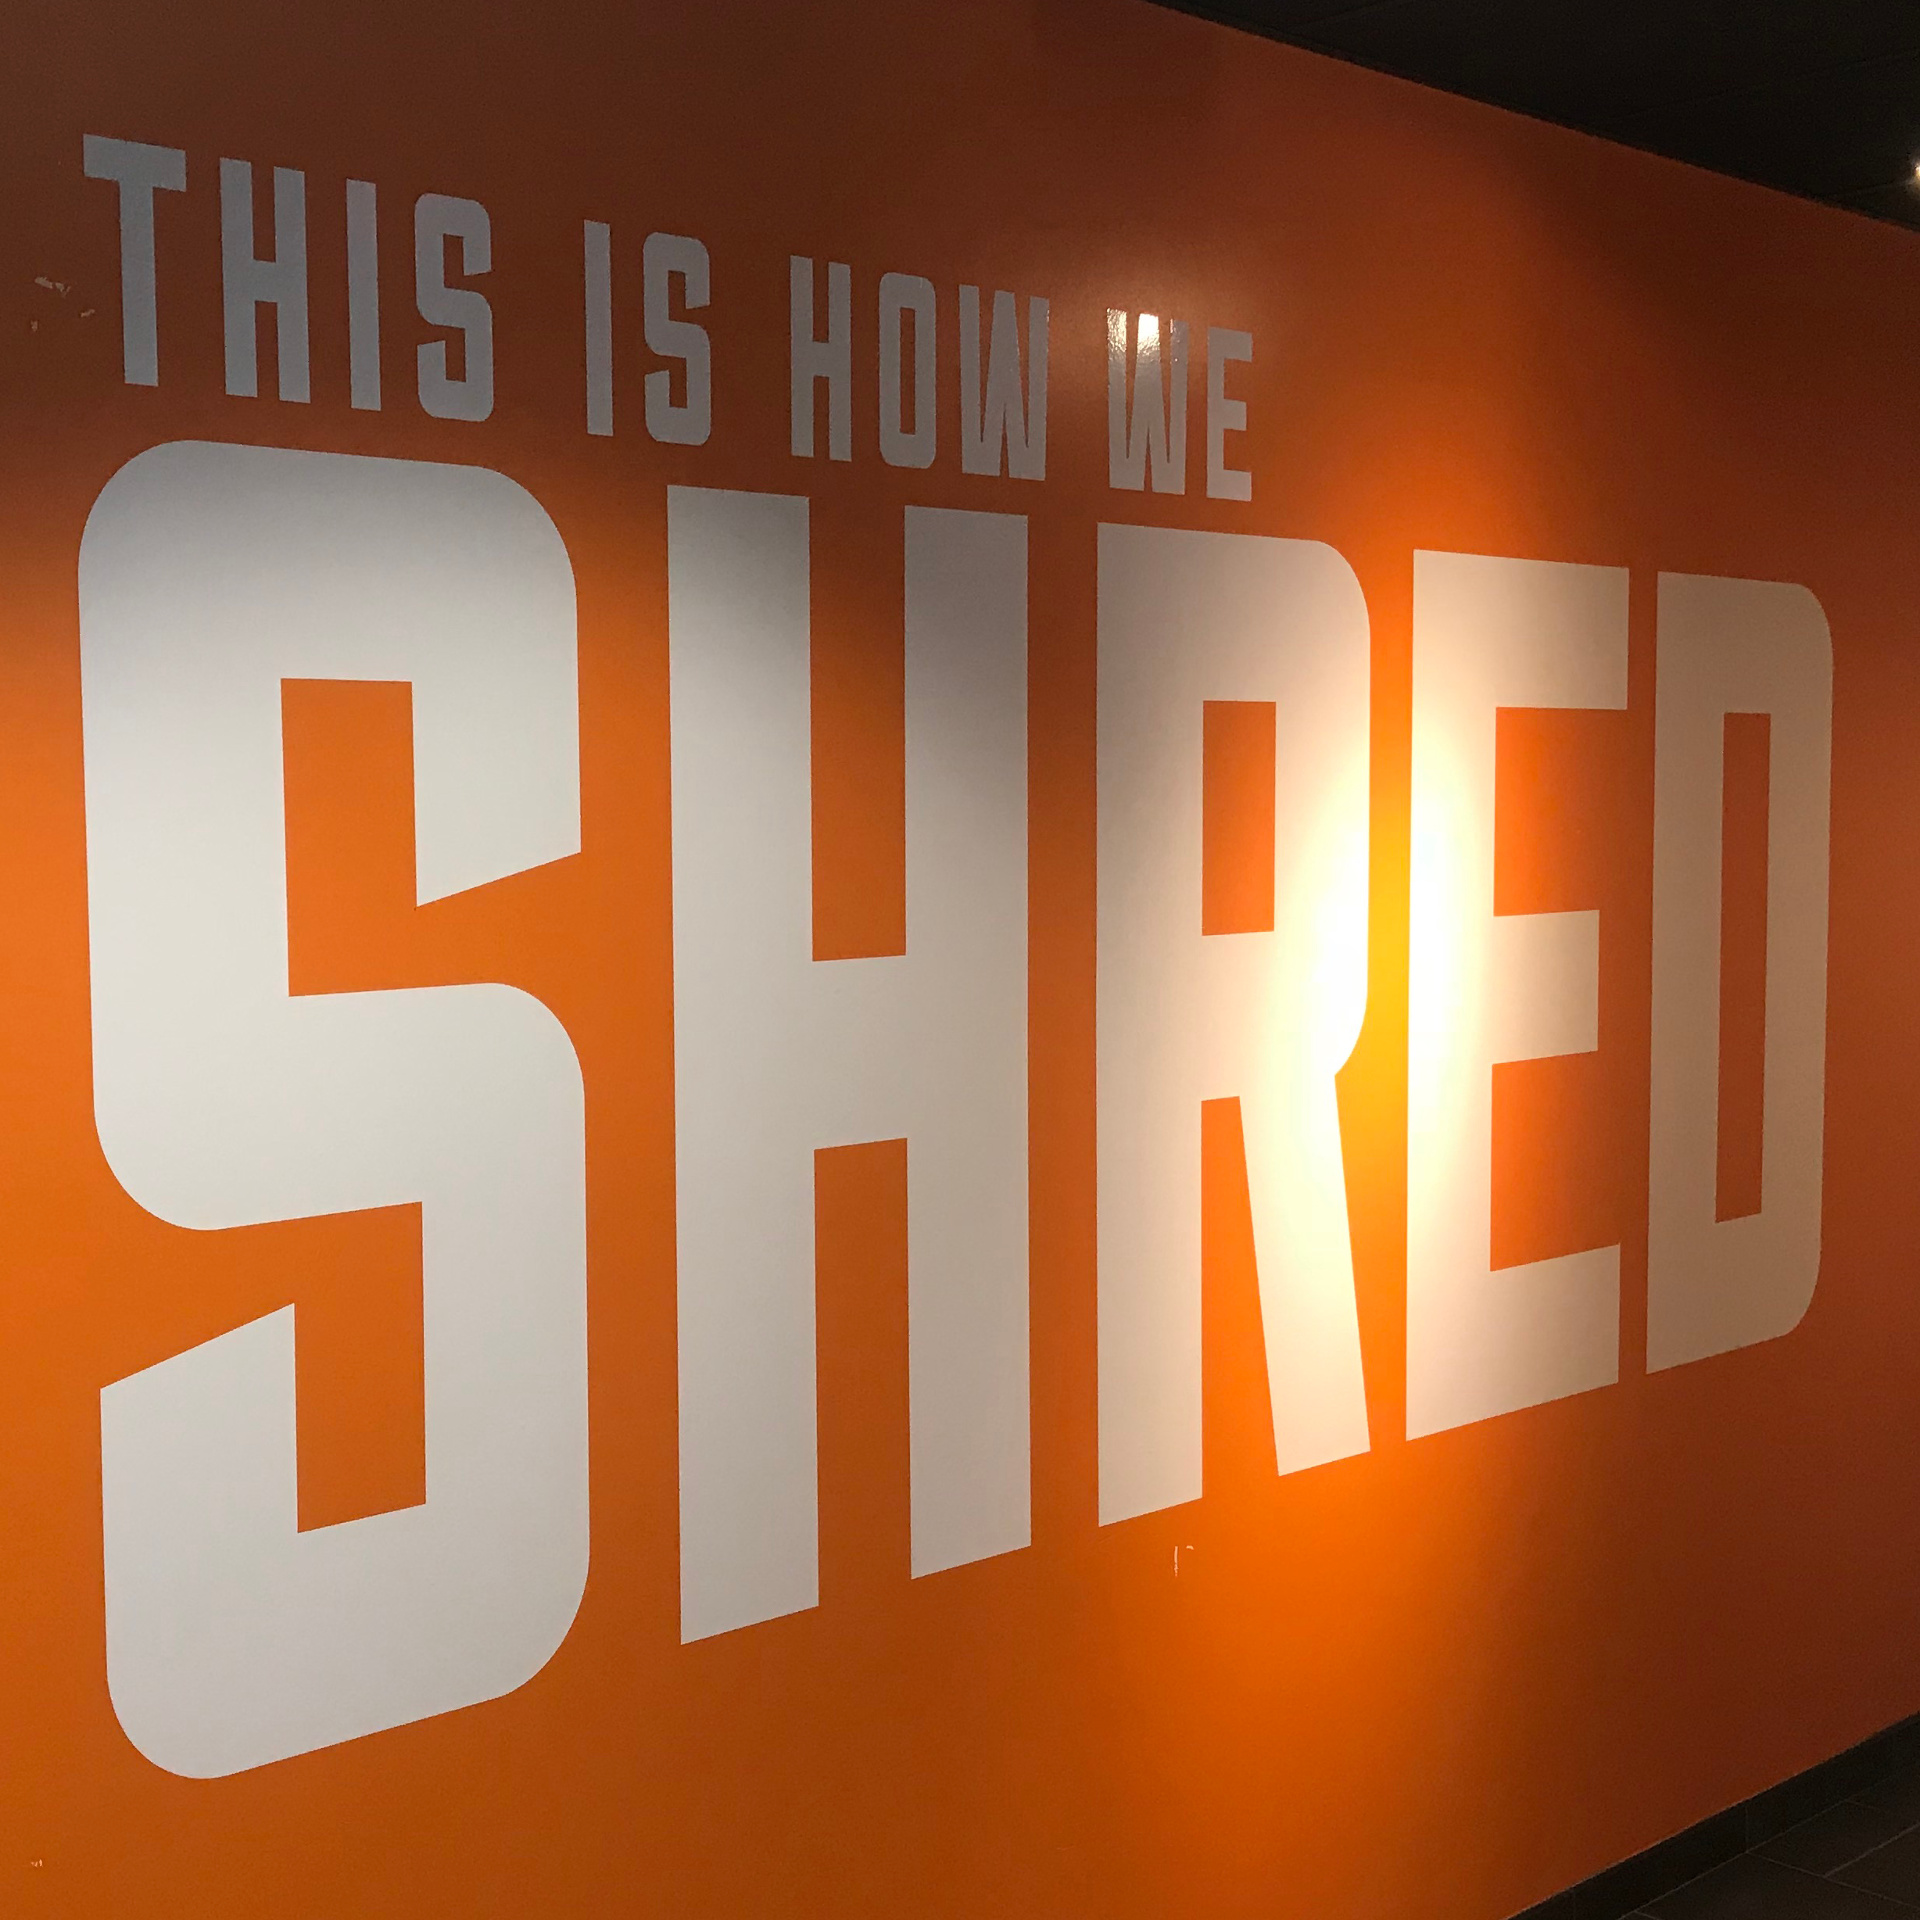 Shred Creve Coeur Wall Graphic in Gym…